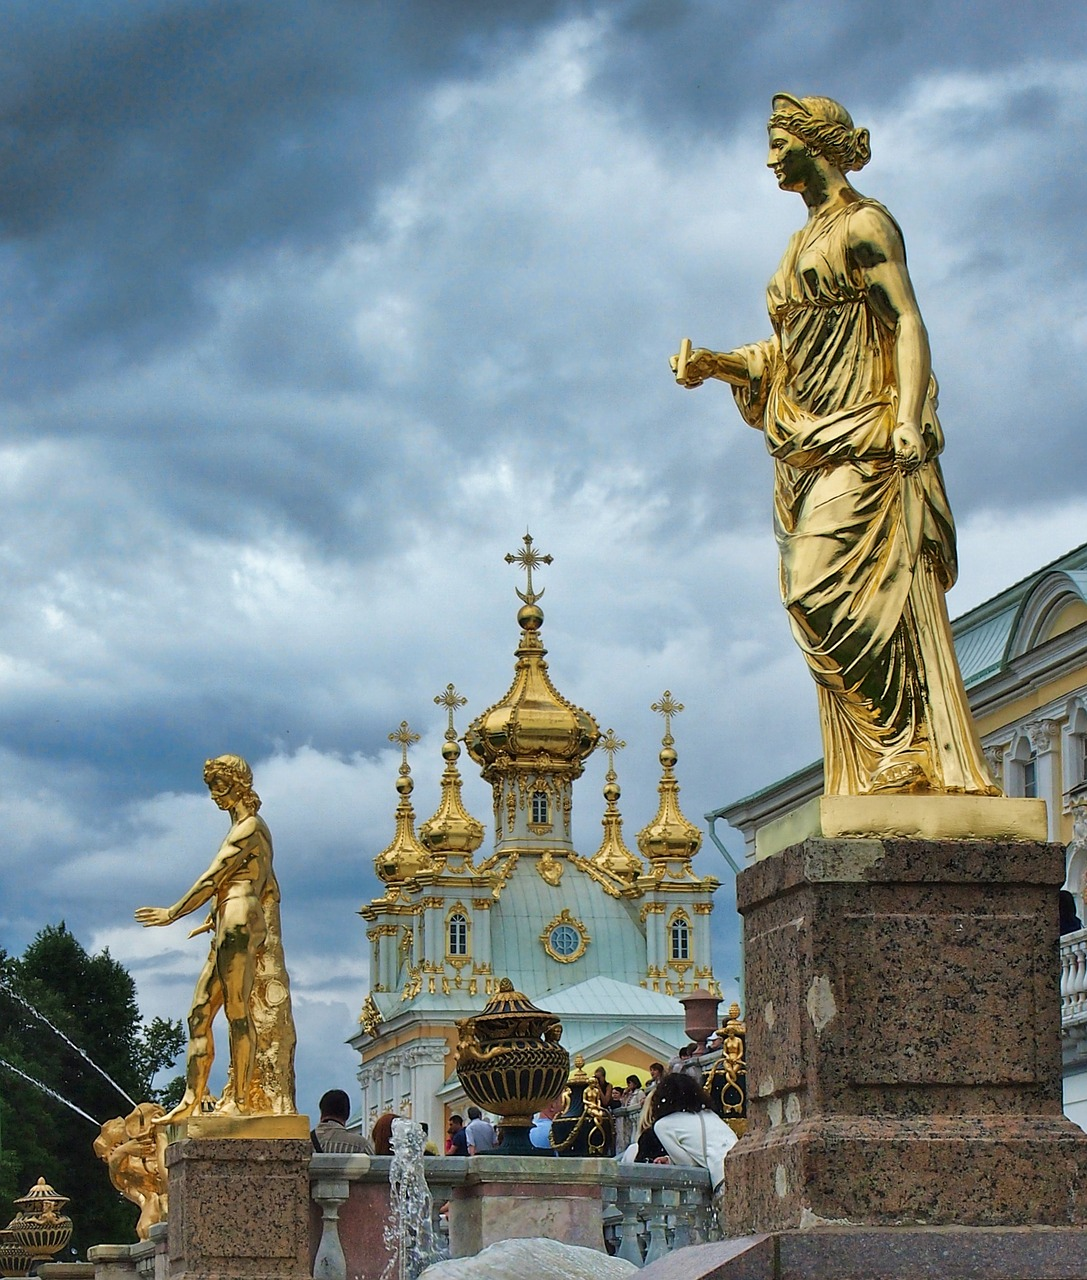 St Petersburg architectural statues.jpg